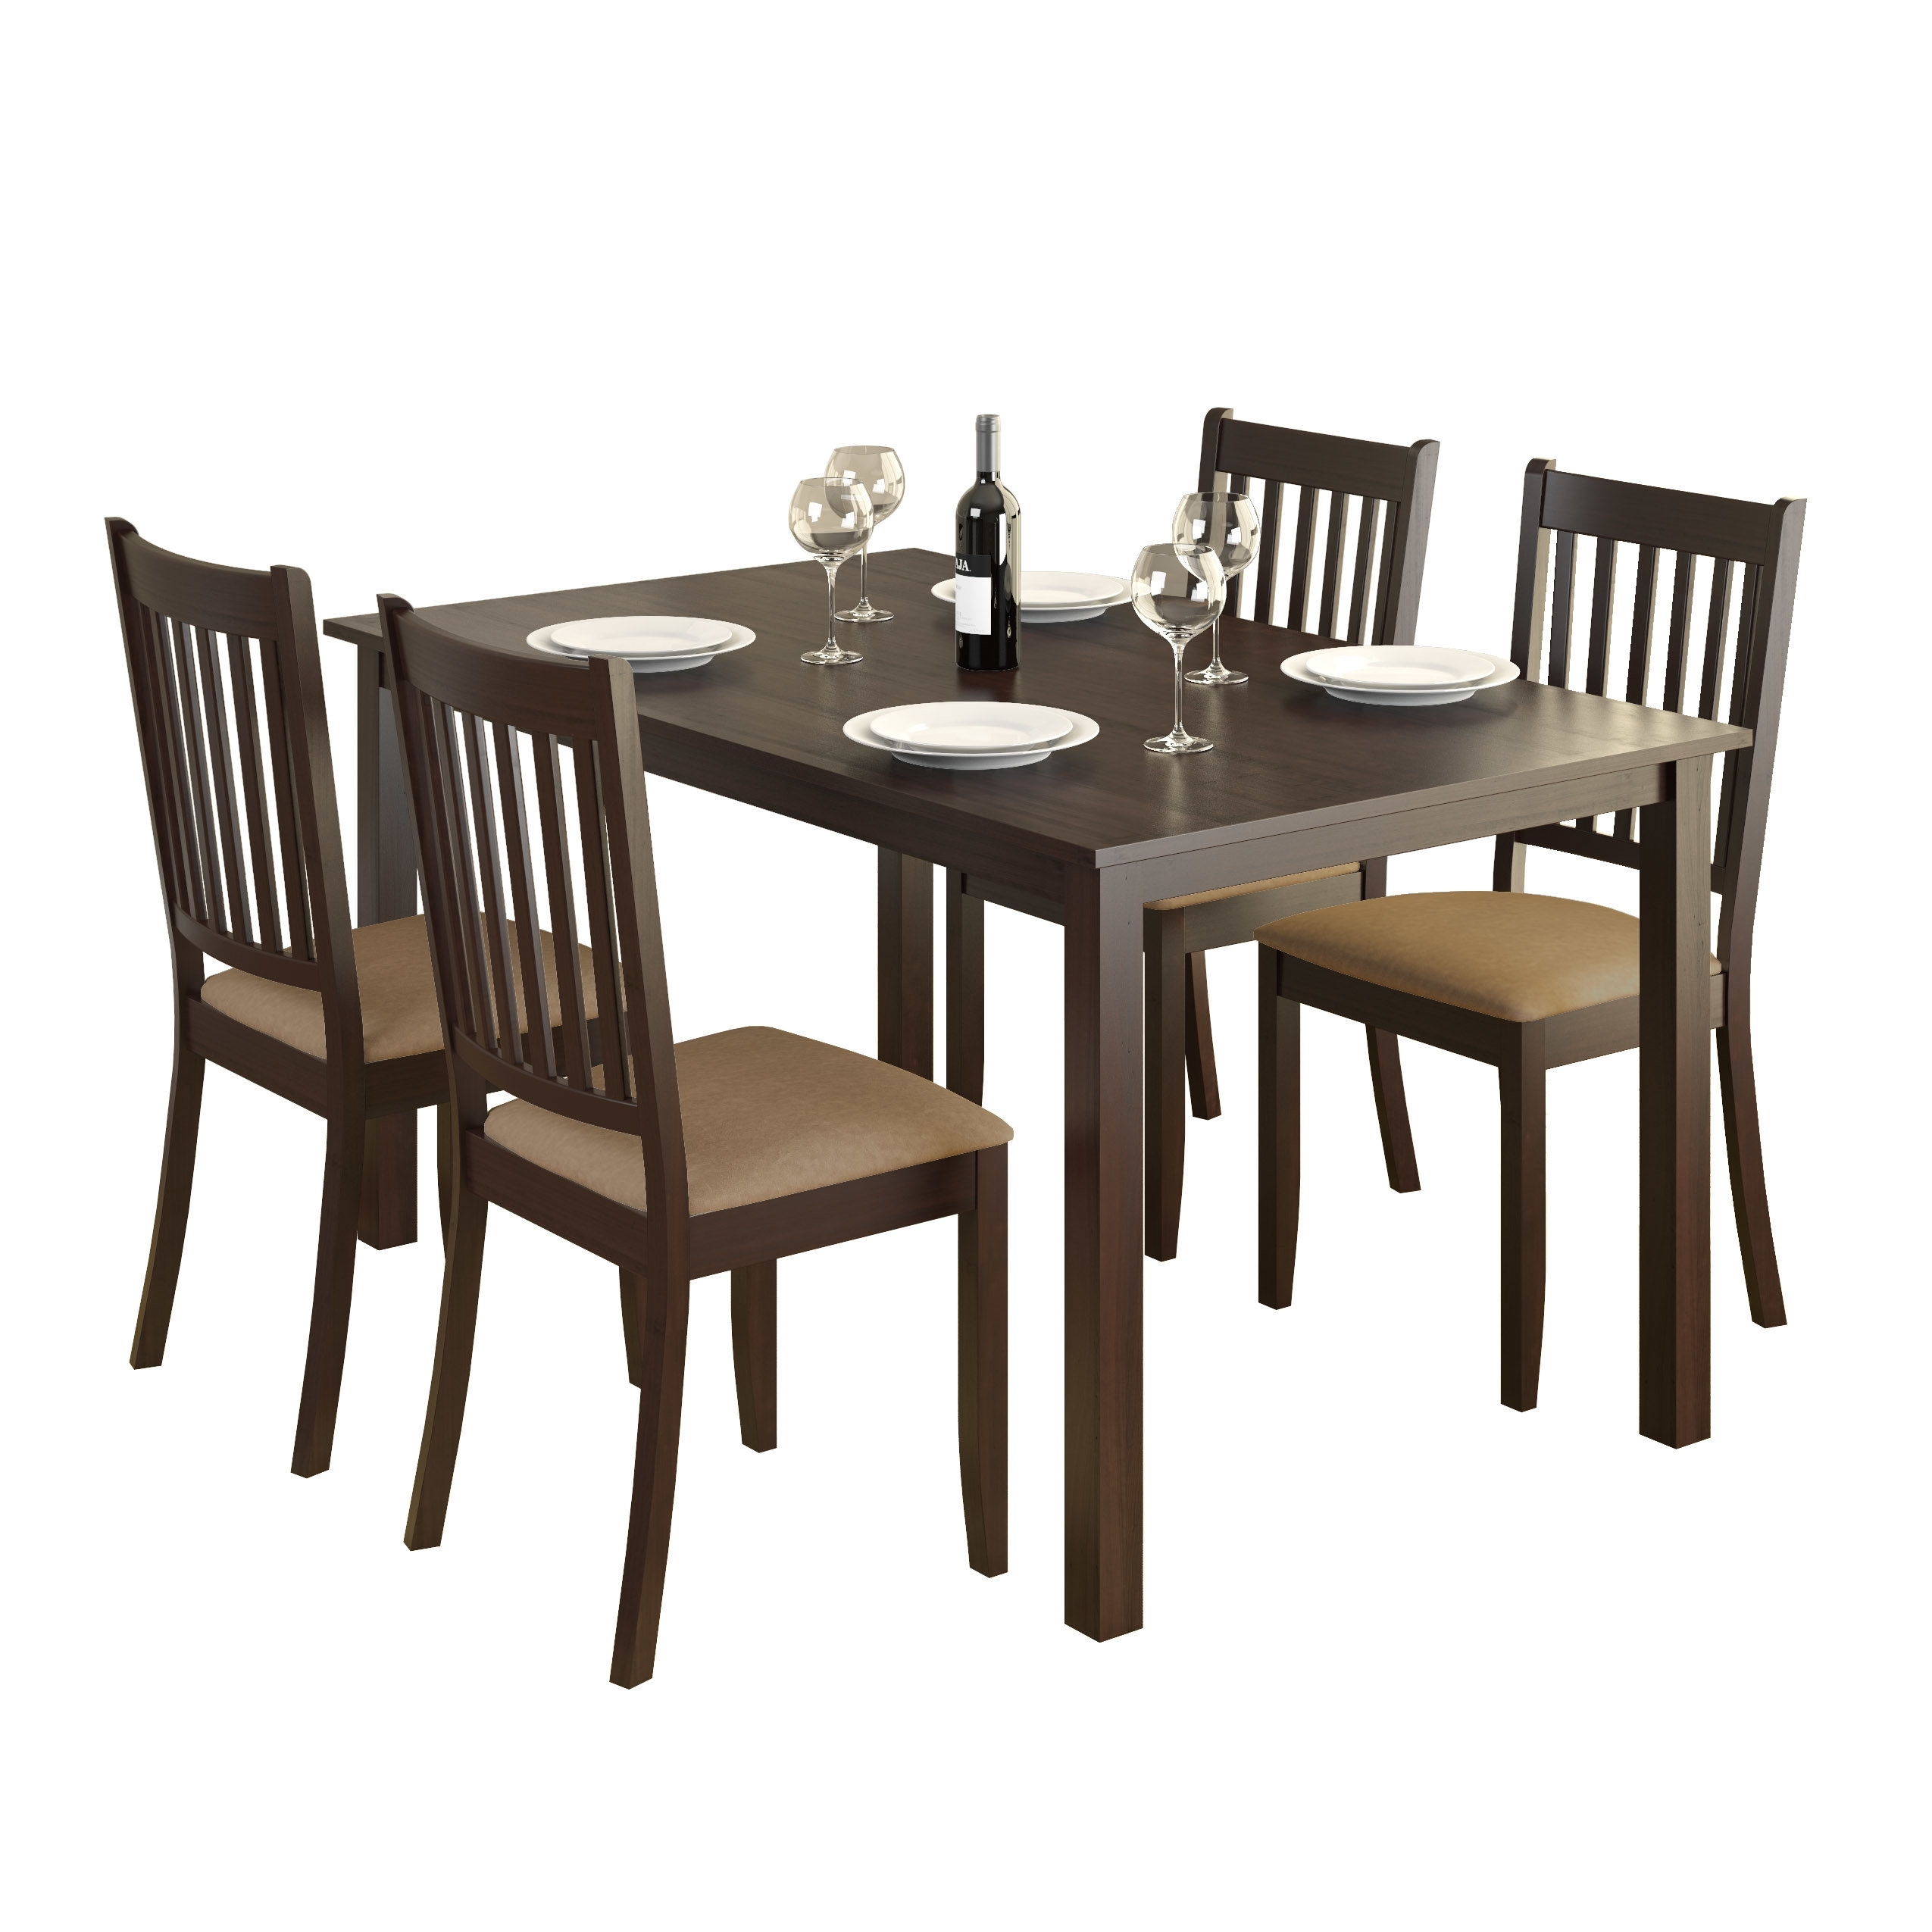 Dcor Design Atwood 5 Piece Dining Set & Reviews | Wayfair Pertaining To Most Recent Laurent 7 Piece Rectangle Dining Sets With Wood And Host Chairs (Image 9 of 20)